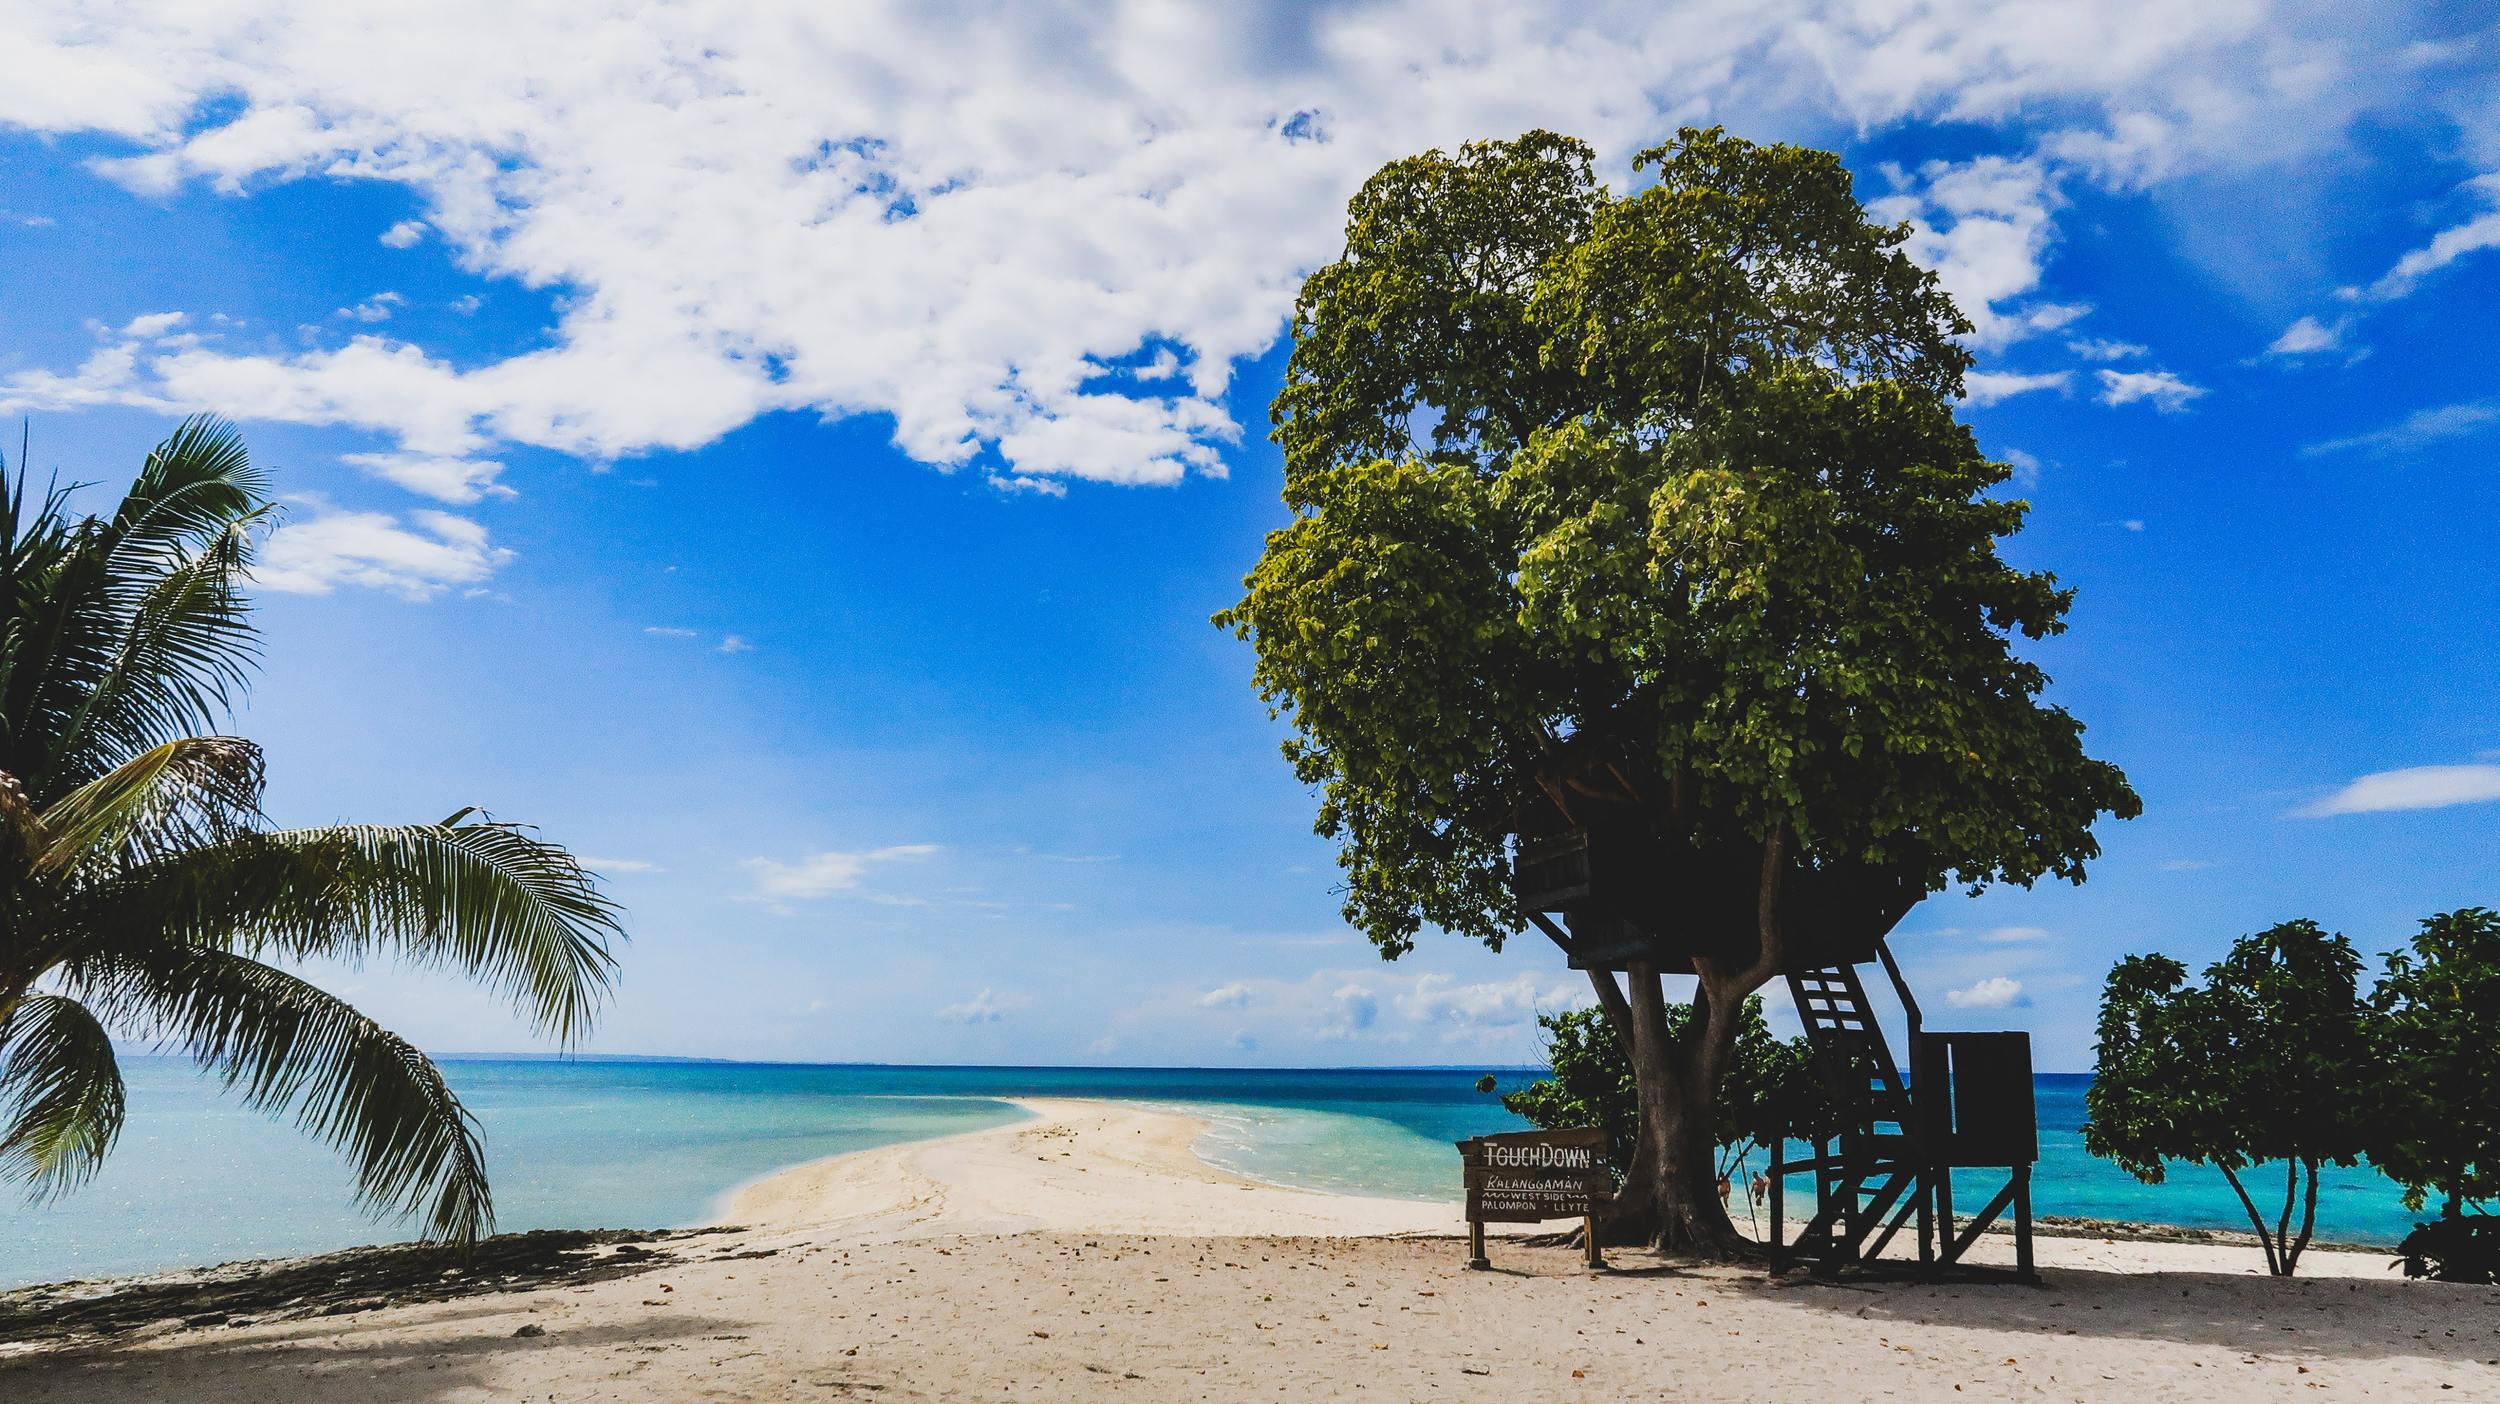 Palompon, Leyte Travel Guide from a Local Kalanggaman Island and More!